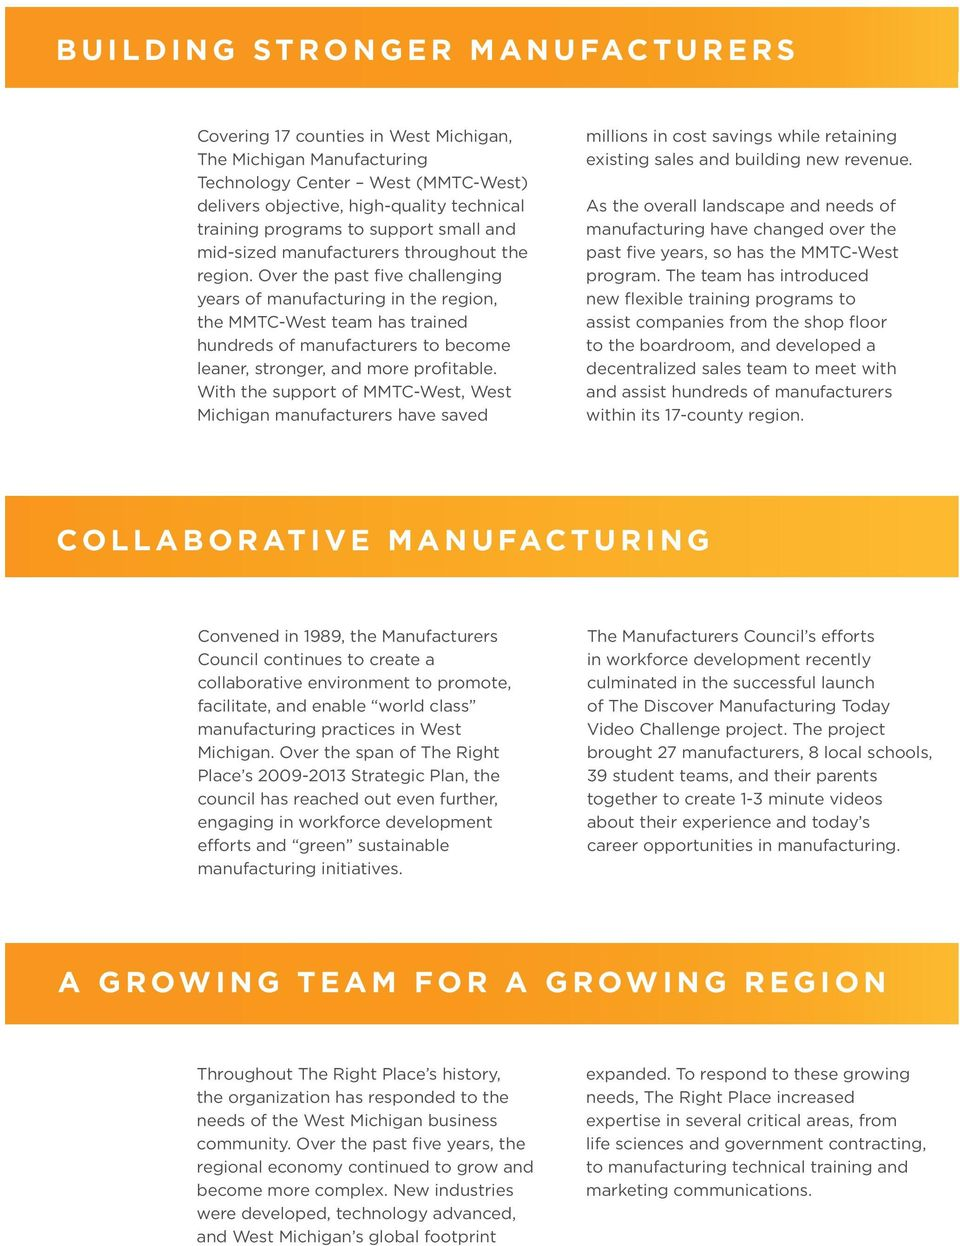 Over the past five challenging years of manufacturing in the region, the MMTC-West team has trained hundreds of manufacturers to become leaner, stronger, and more profitable.